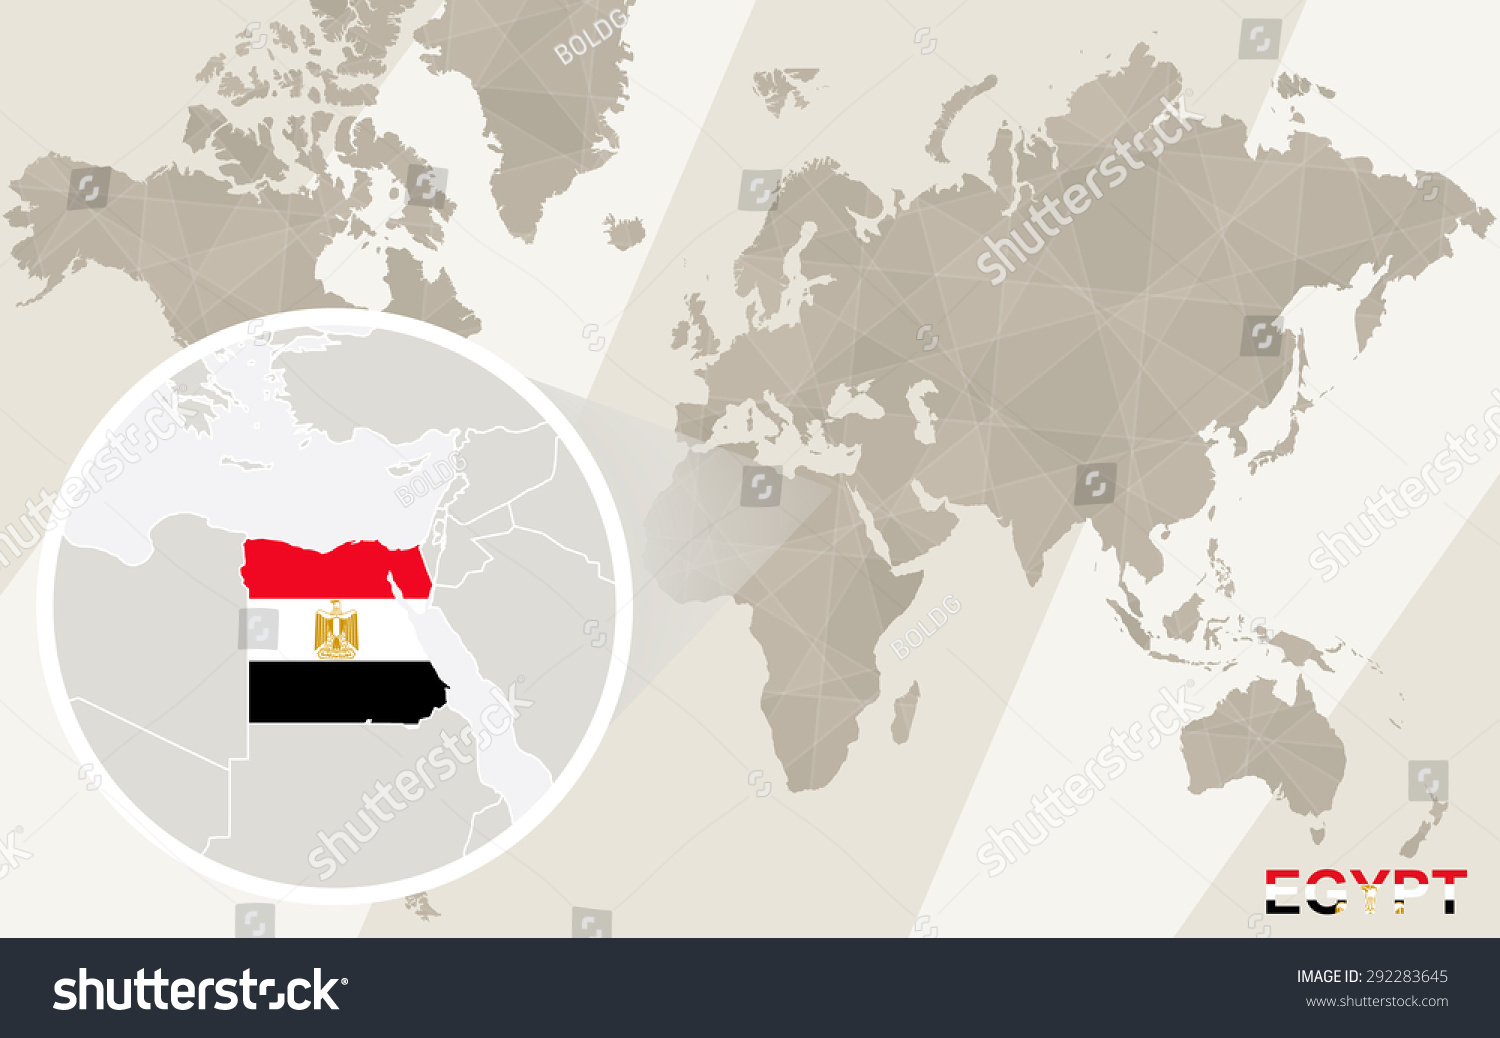 Zoom on egypt map flag world stock vector 292283645 shutterstock zoom on egypt map and flag world map gumiabroncs Choice Image